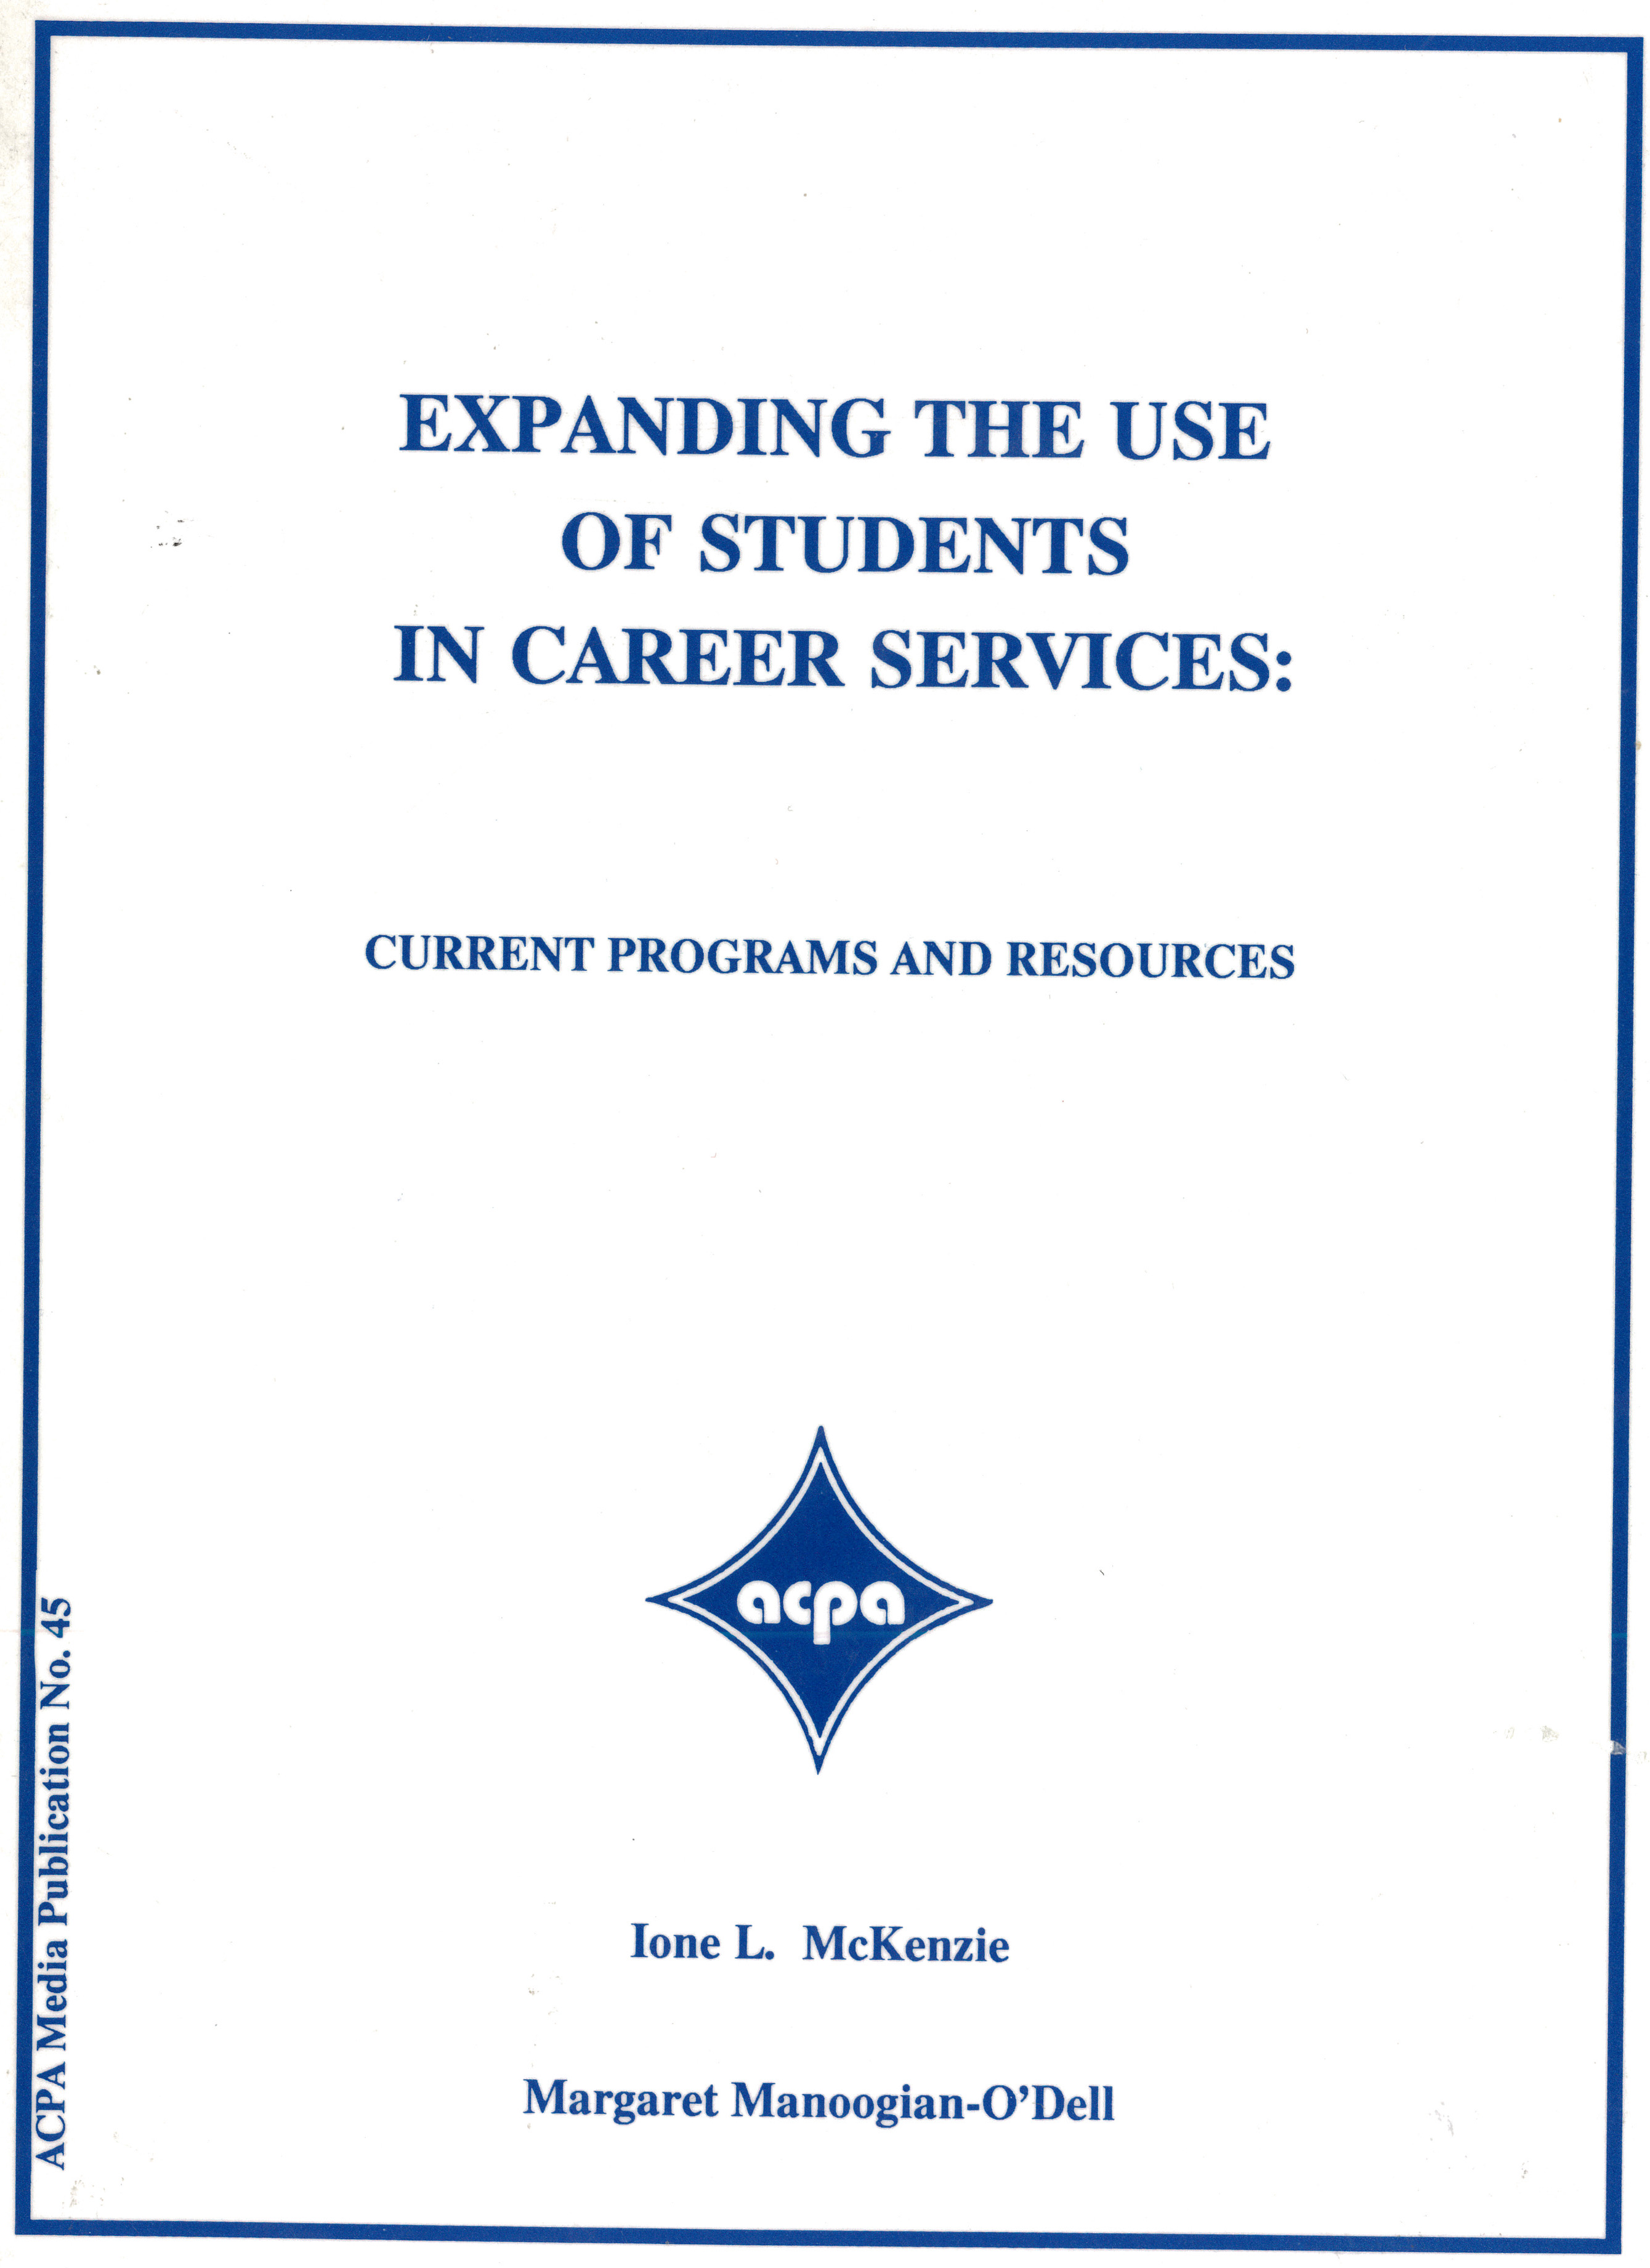 Expanding the Use of Students in Career Services: Current Programs and Resources